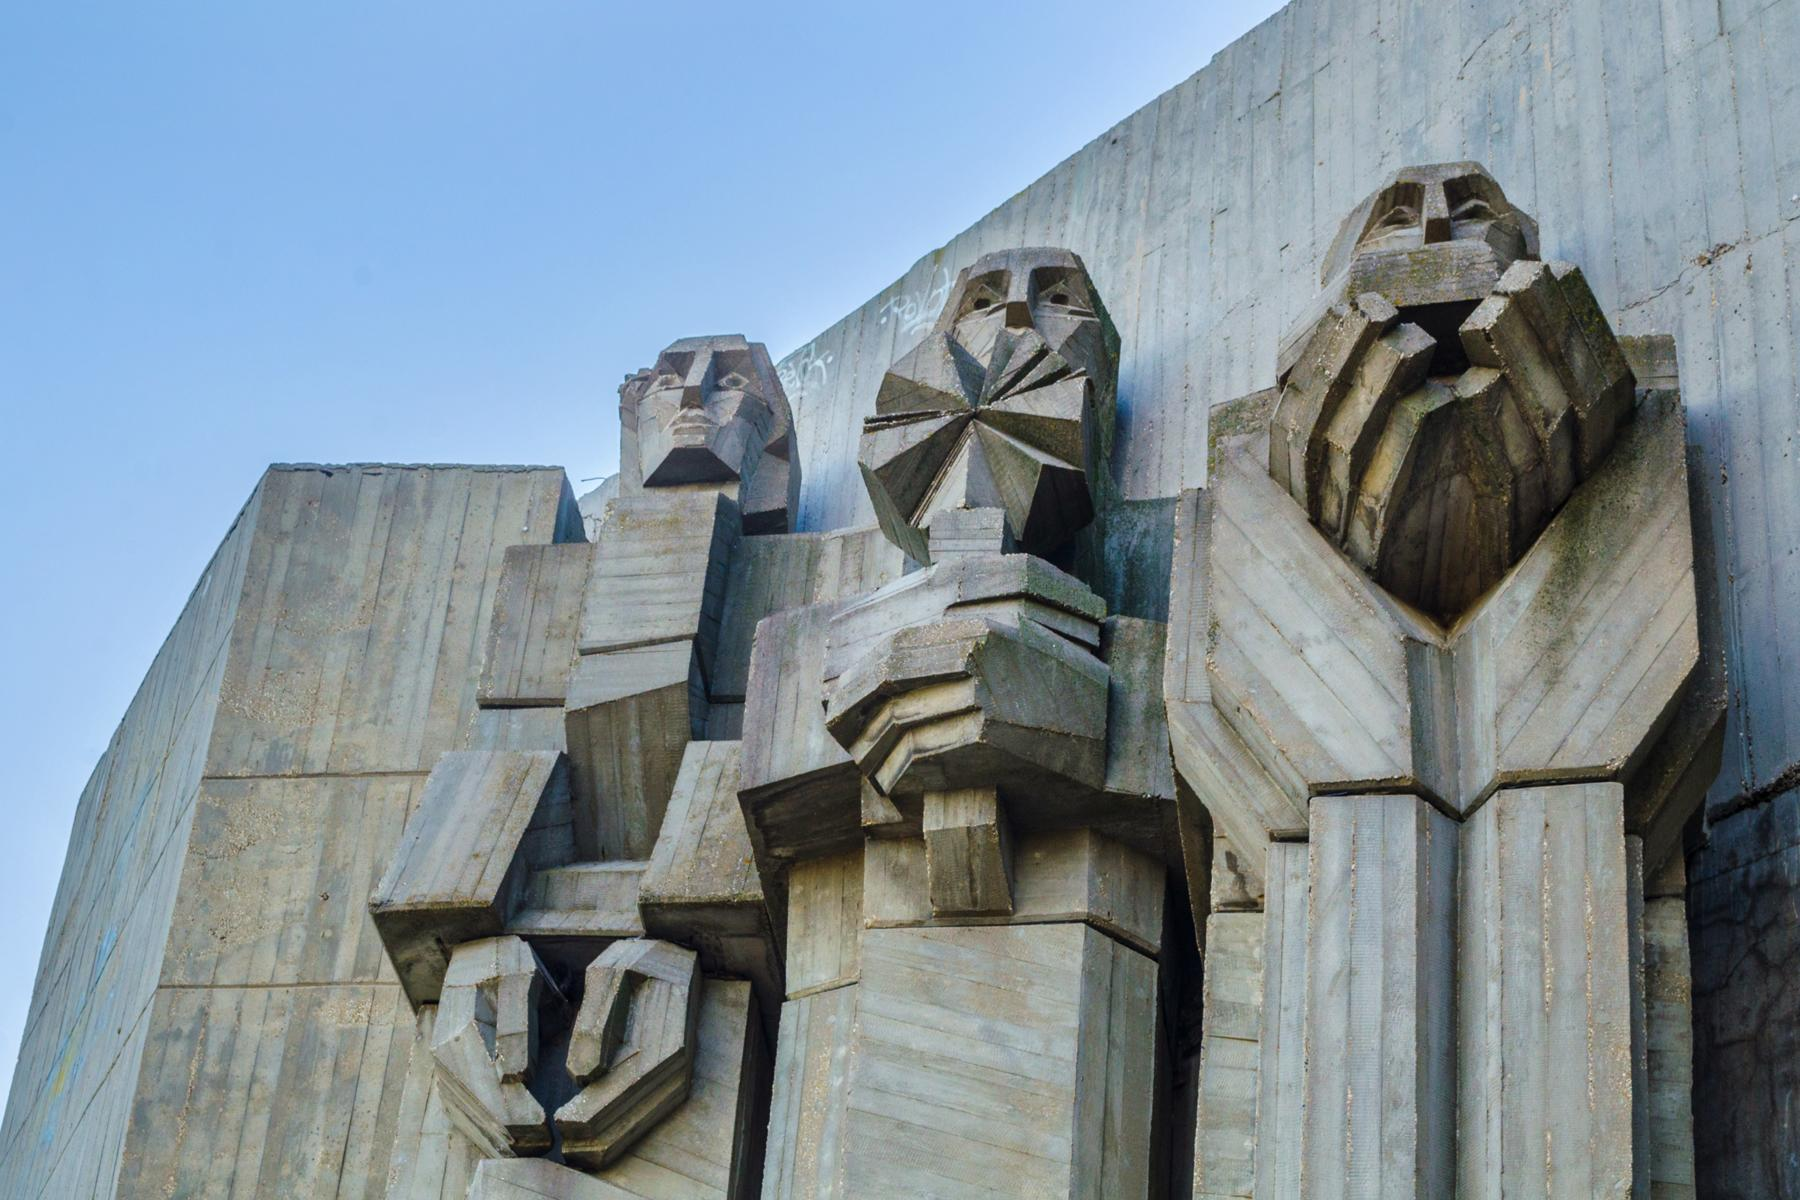 giant statues and monuments from the soviet union